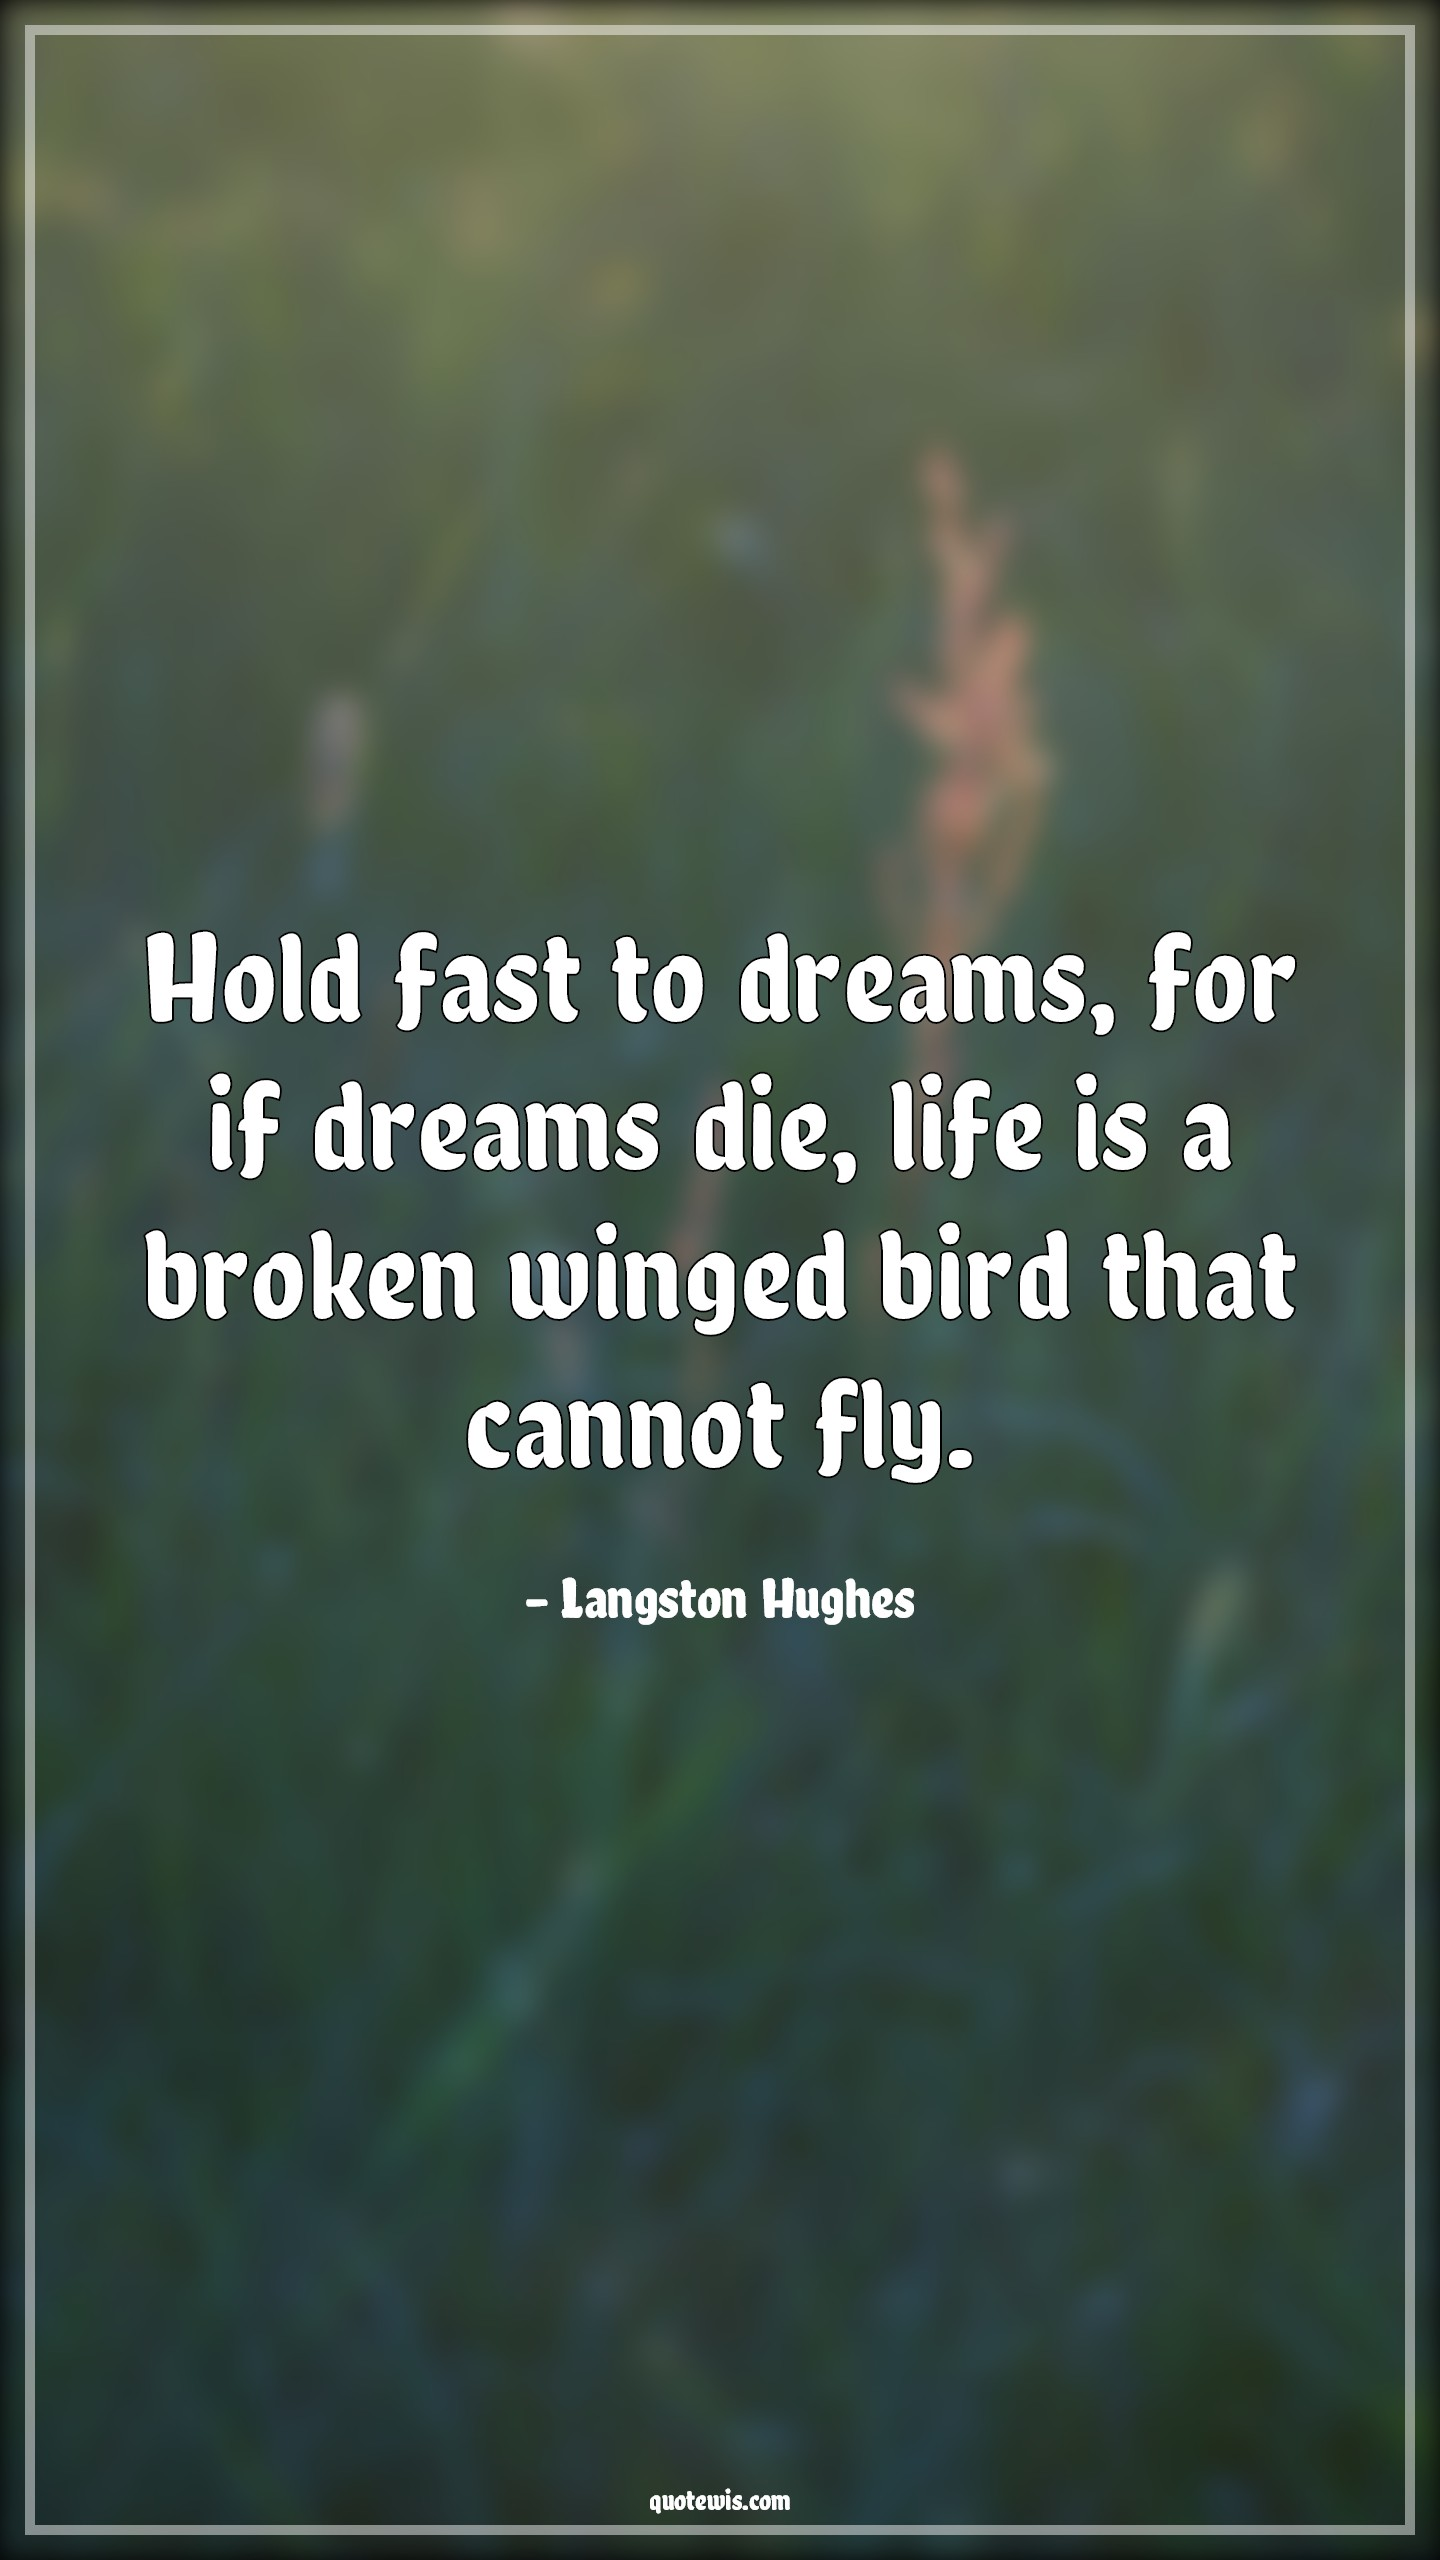 Hold fast to dreams, for if dreams die, life is a broken winged bird that cannot fly.